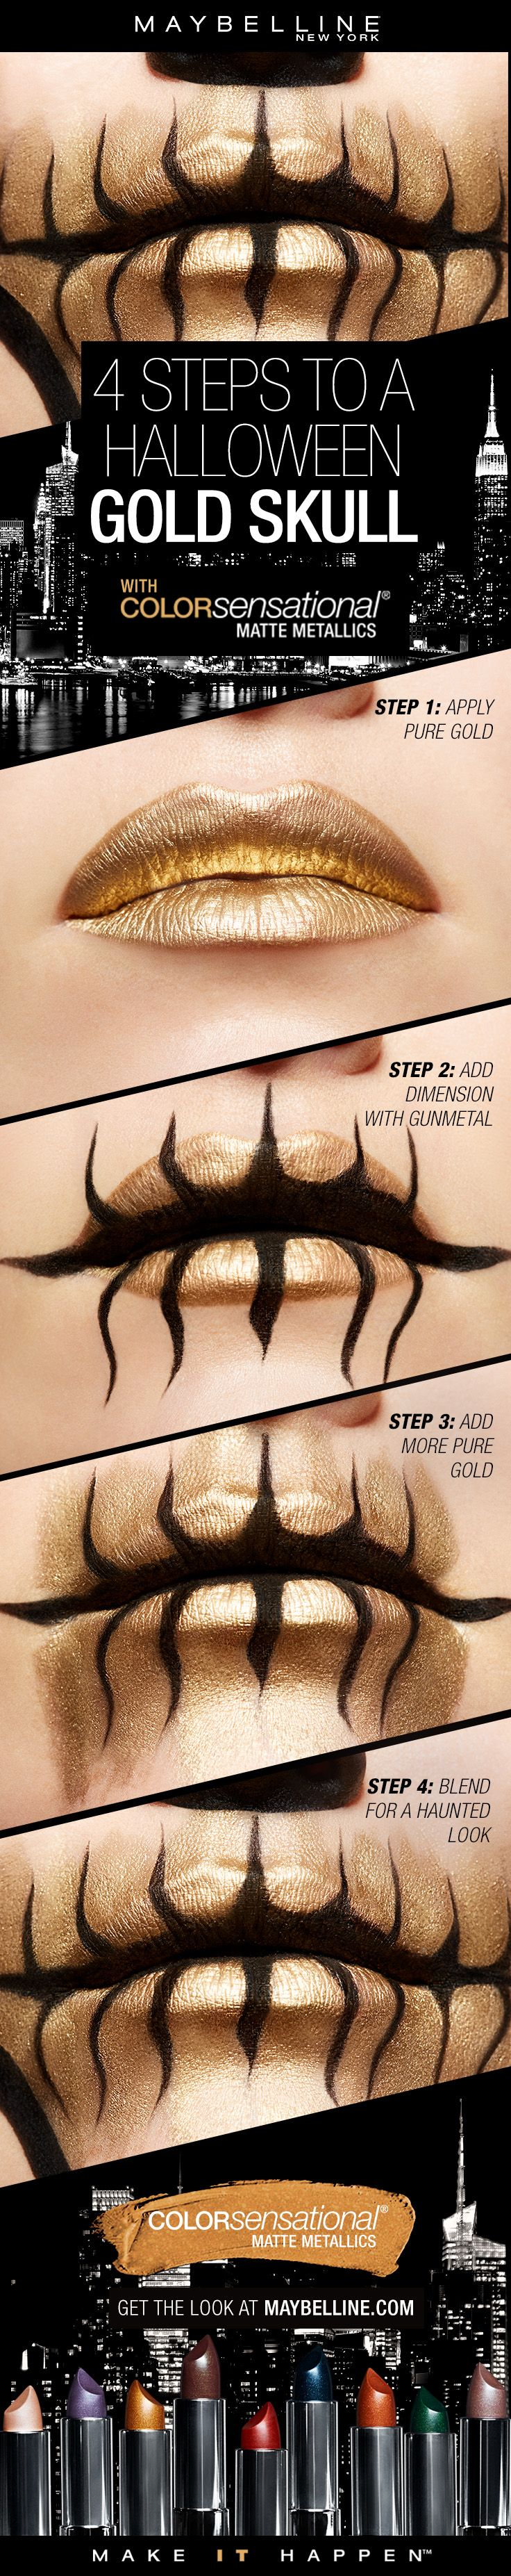 Four easy steps to get a gold skull lip art look for Halloween! First, apply Matte Metallics in 'Pure Gold' on the lips. Next, add dimension and detail with 'Gunmetal'. Then, add more 'Pure Gold' blended around the lips.  Lastly, blend the harsh edges out.